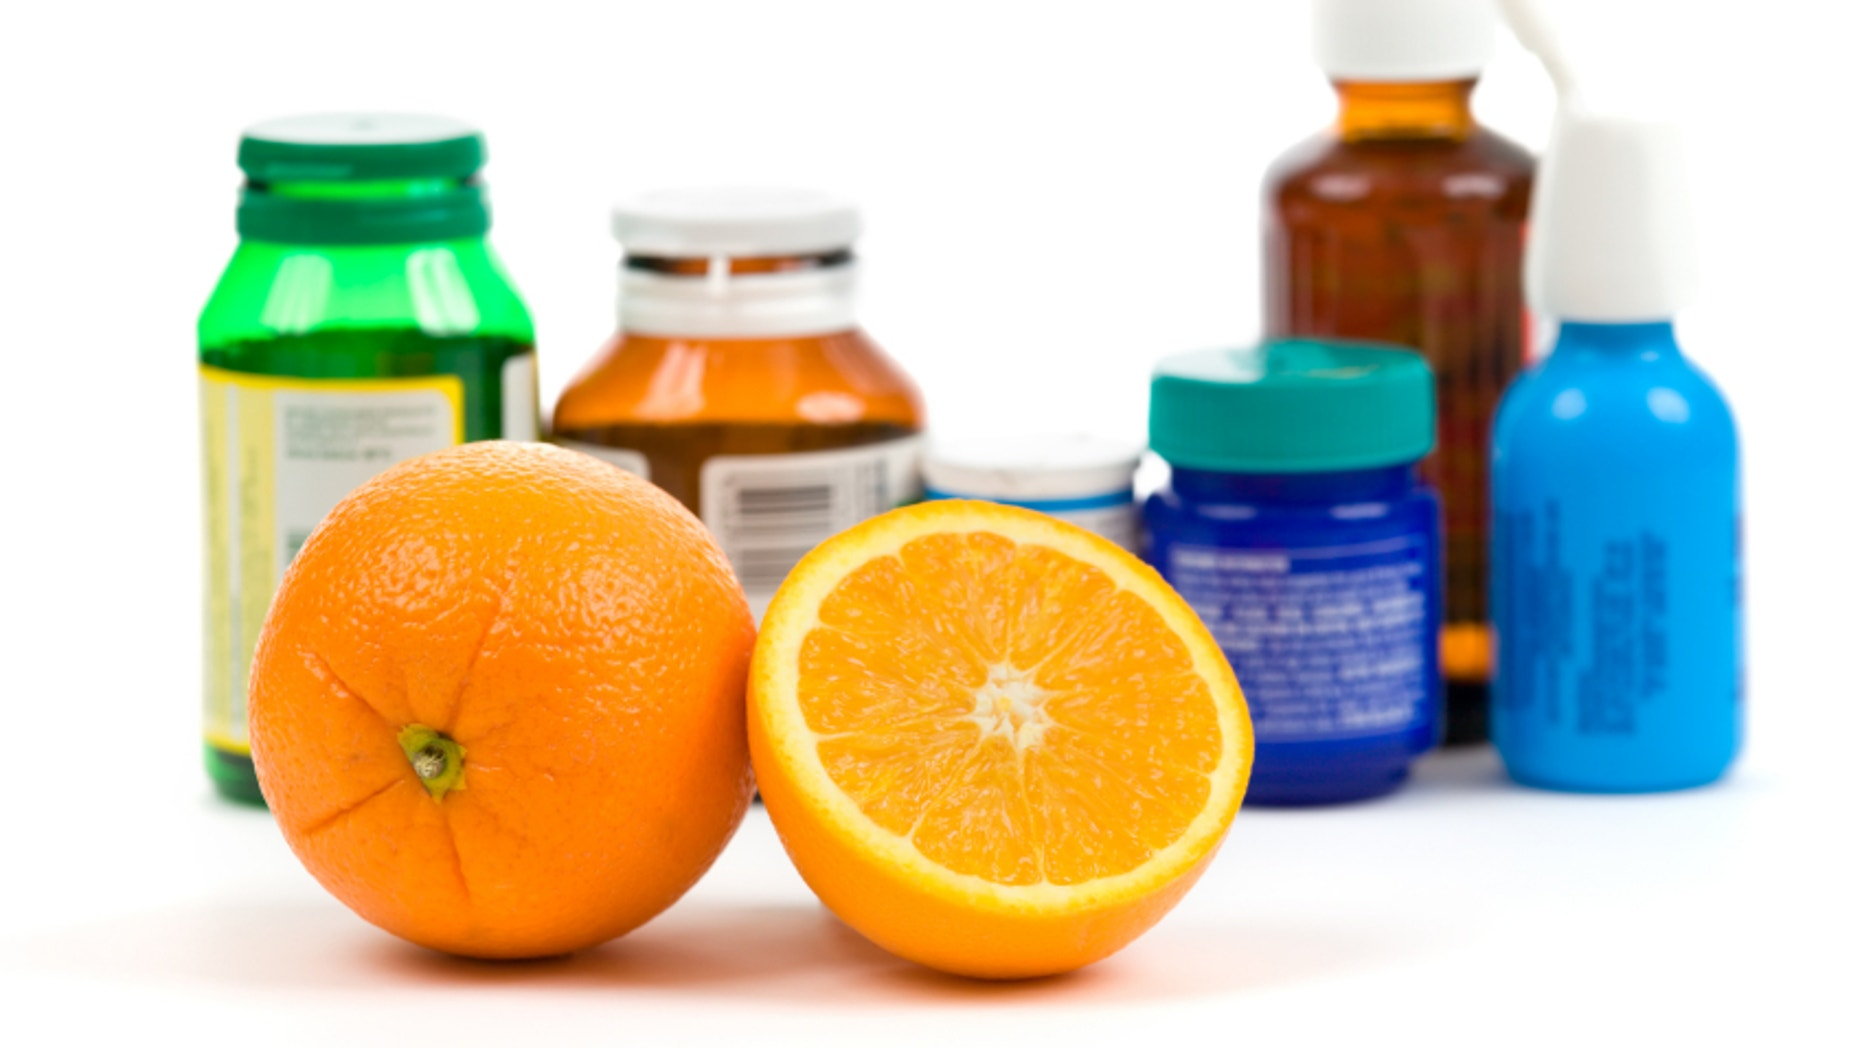 Orange as an alternative to medicine over white